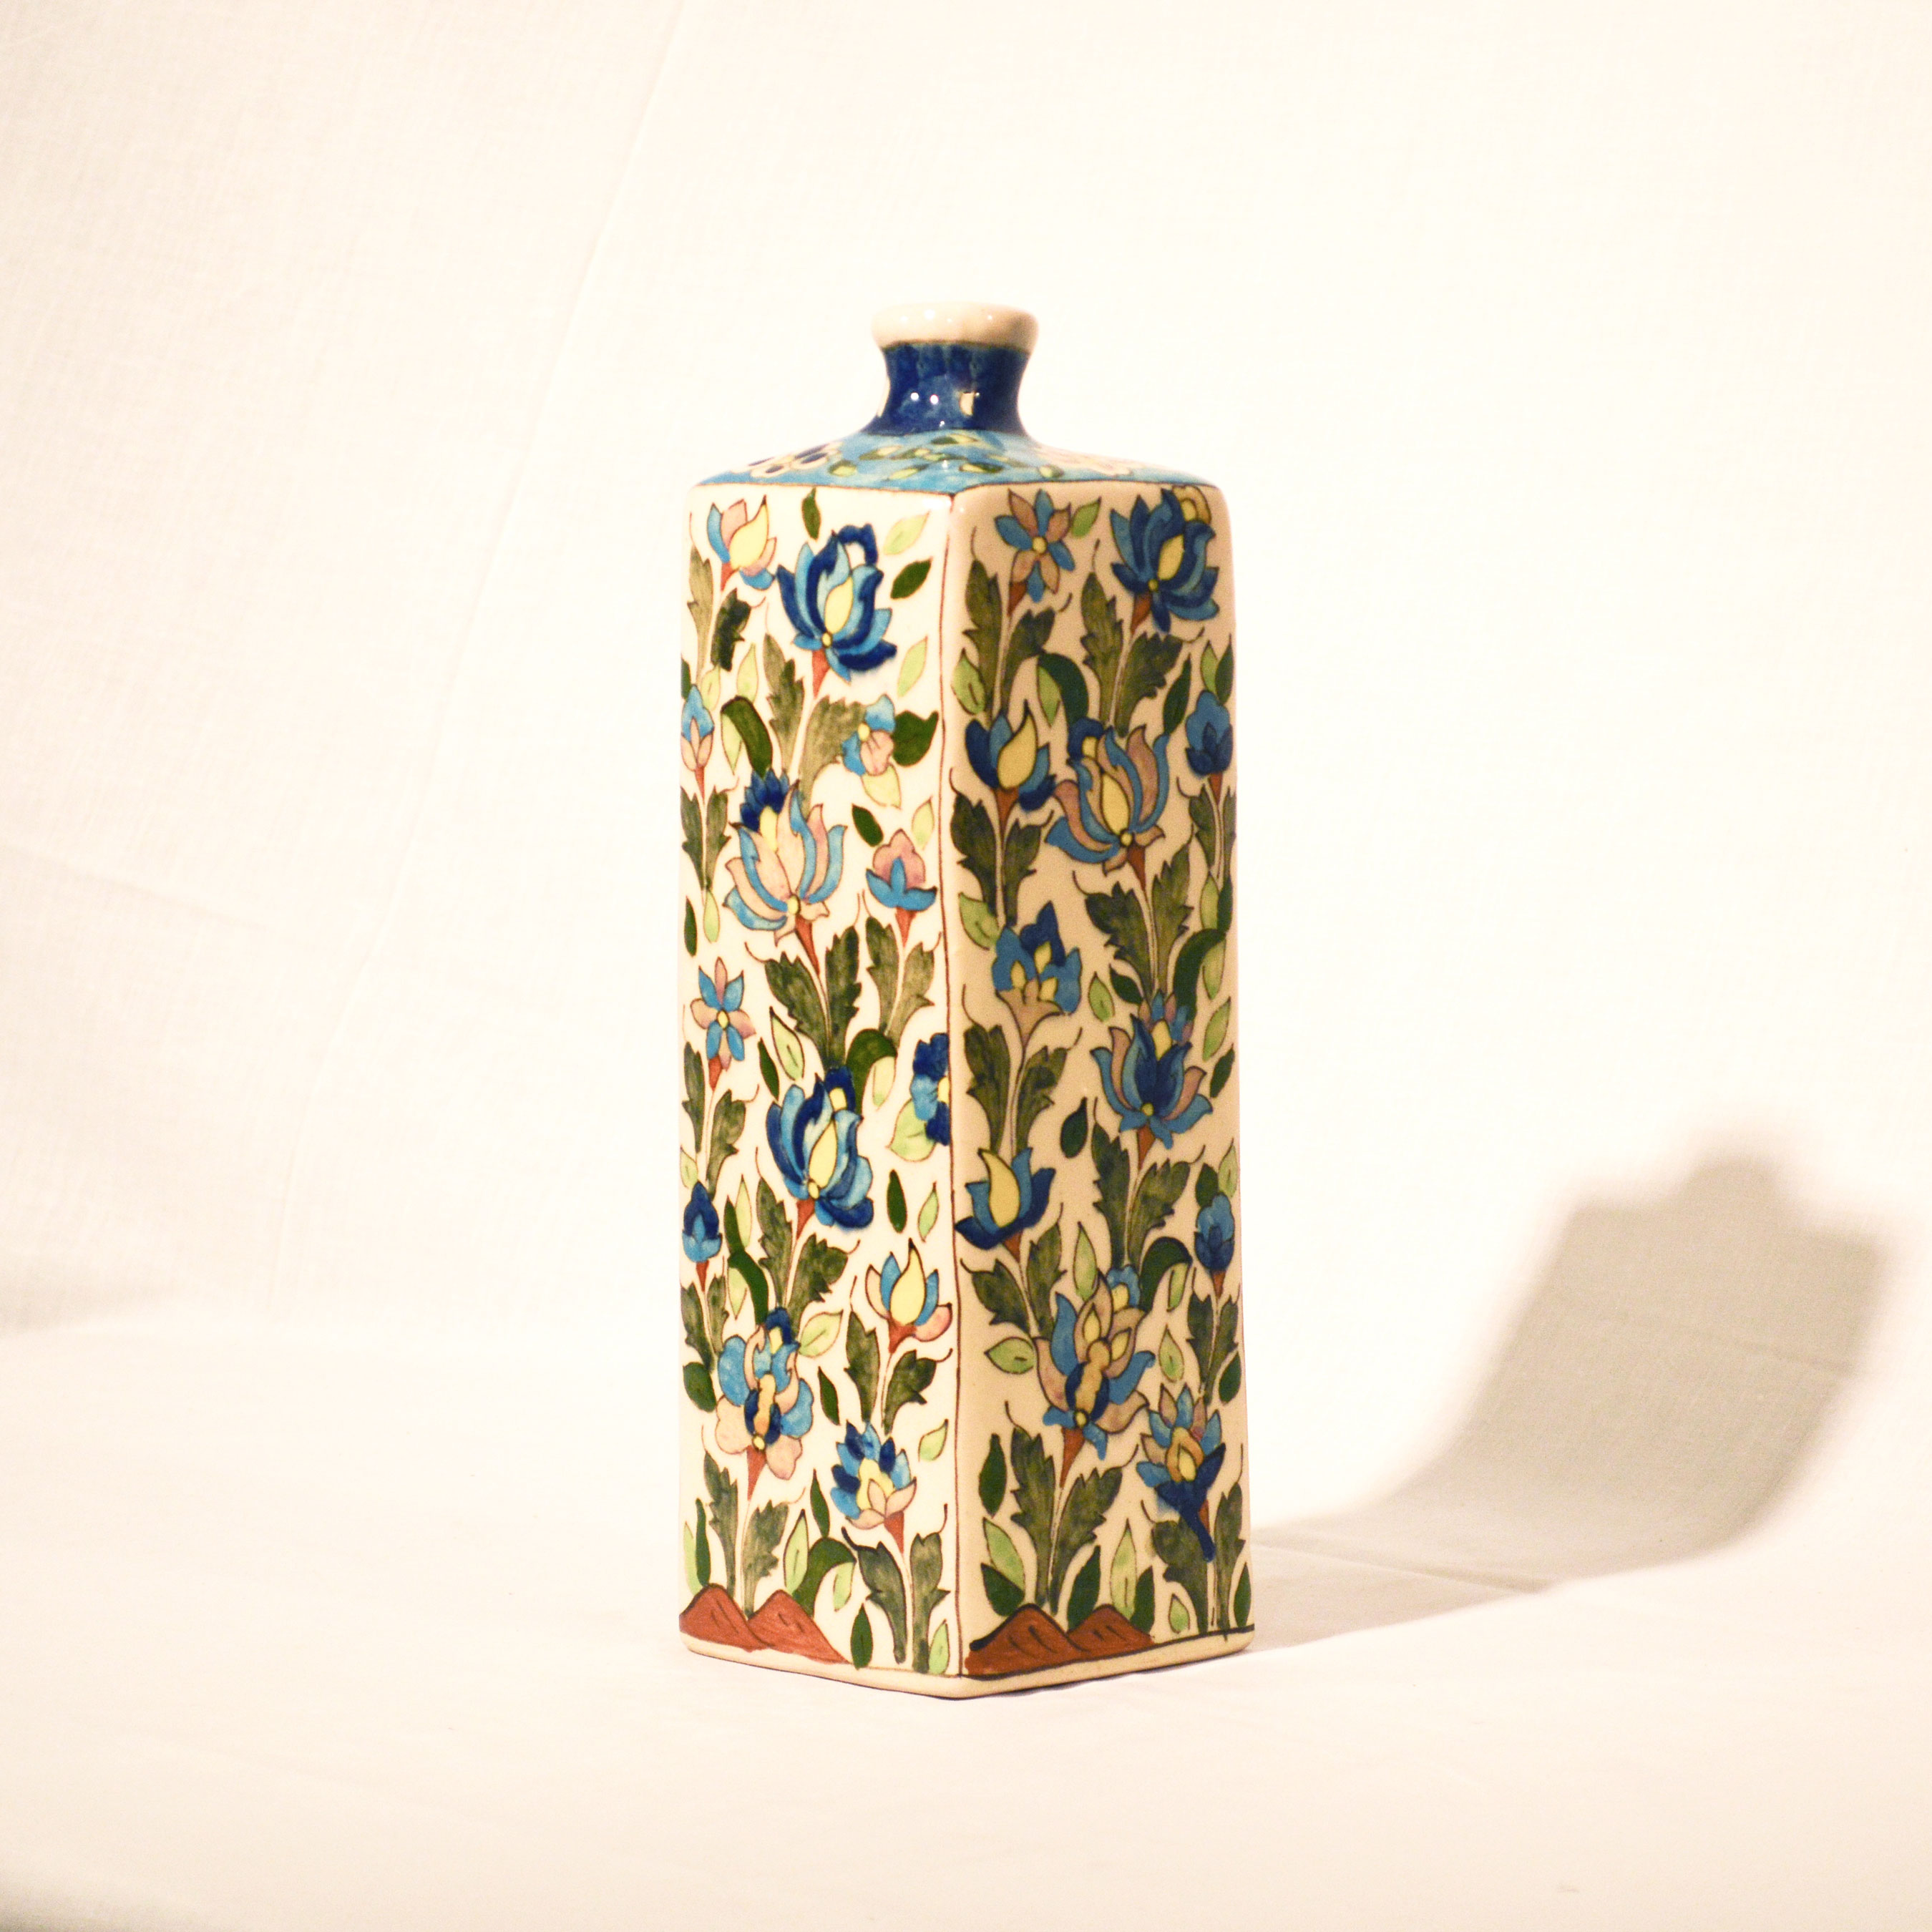 Hand Painted Cubic Vase No.3